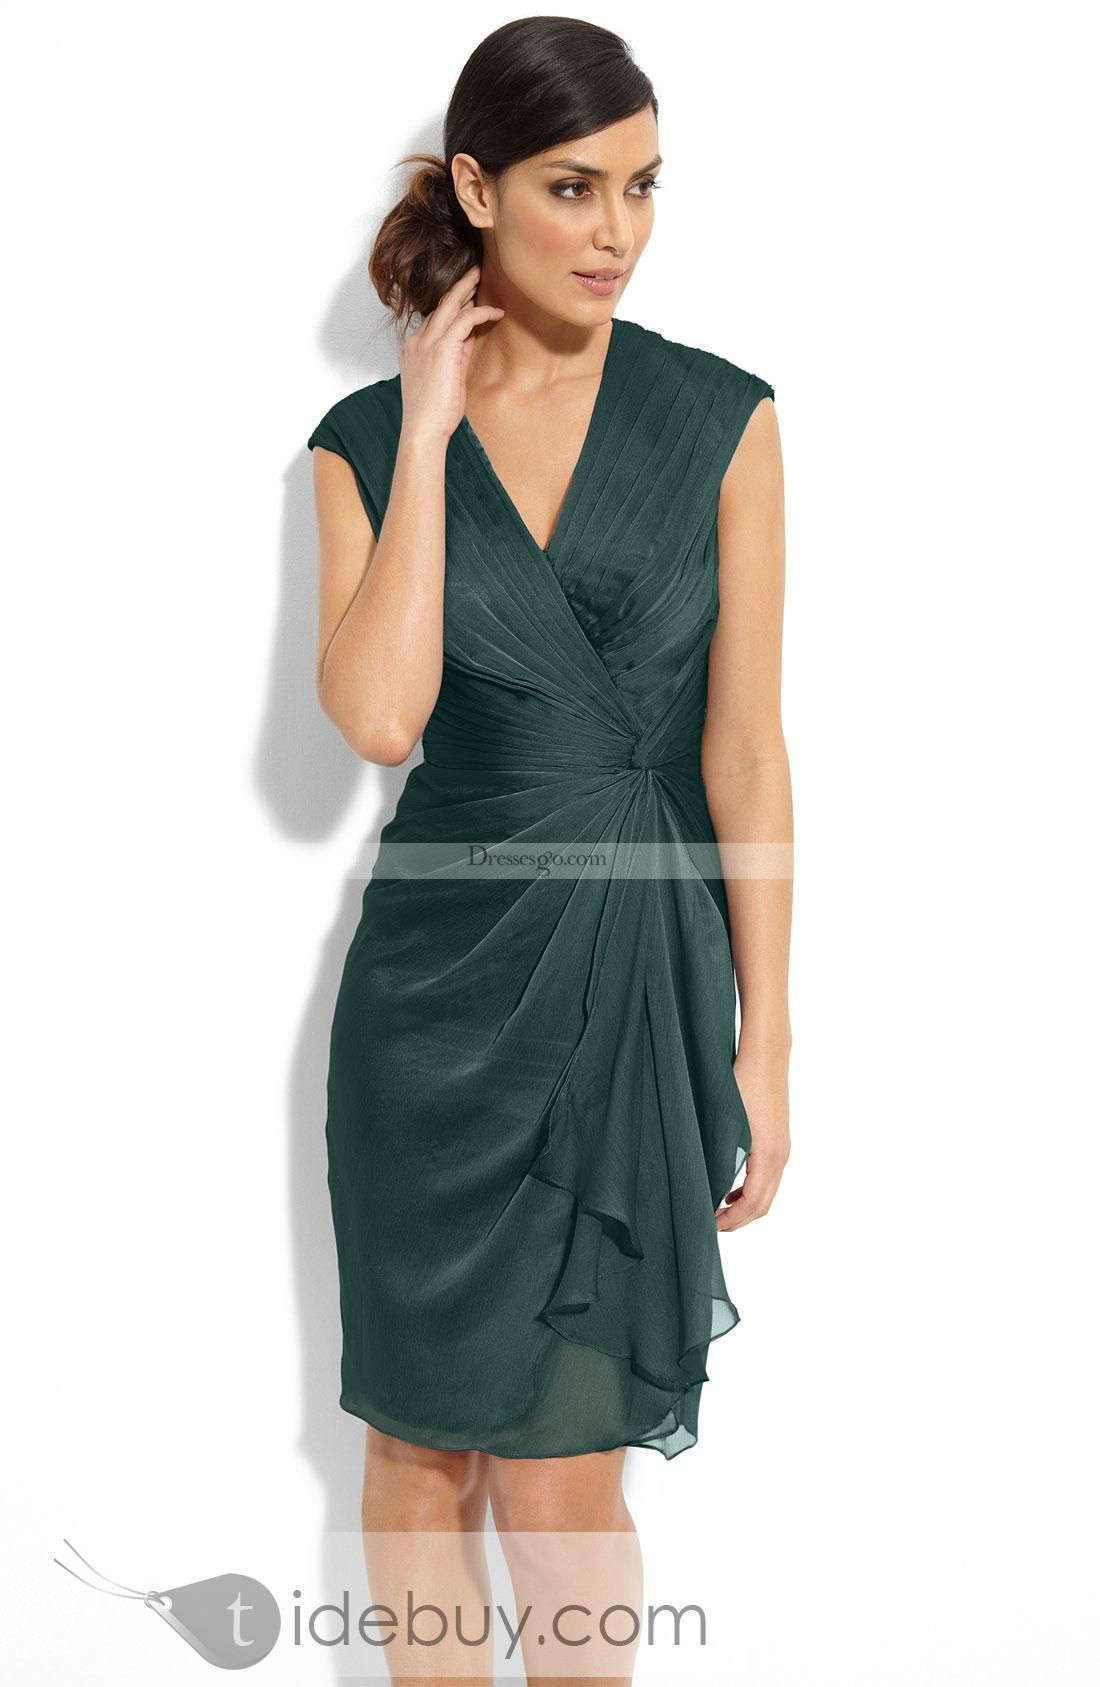 fd781f71fbdb ... Knee-length Pick-up Chiffon Mother OF the Bride Dress Mother of the  Bride Dresses Wedding Party Dresses Buy High Quality Dresses from Dress  Factory